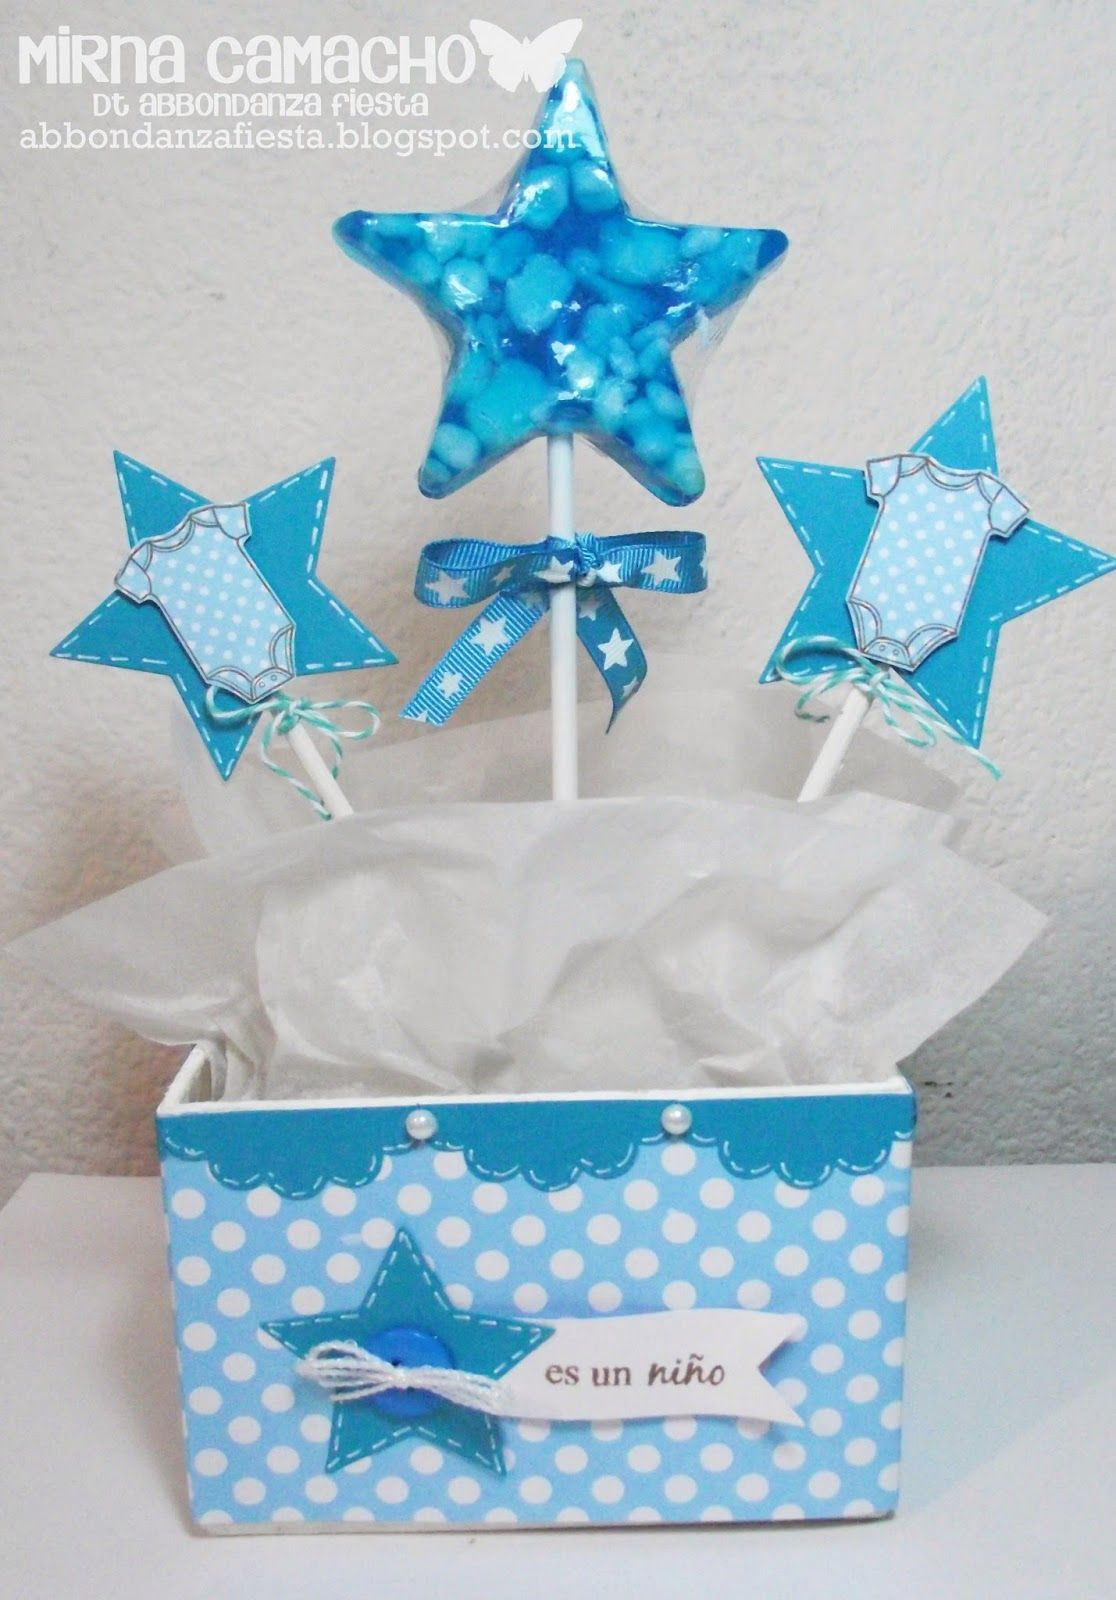 Centro de mesa para baby shower d ni o imagui centros for Mesa baby shower nino